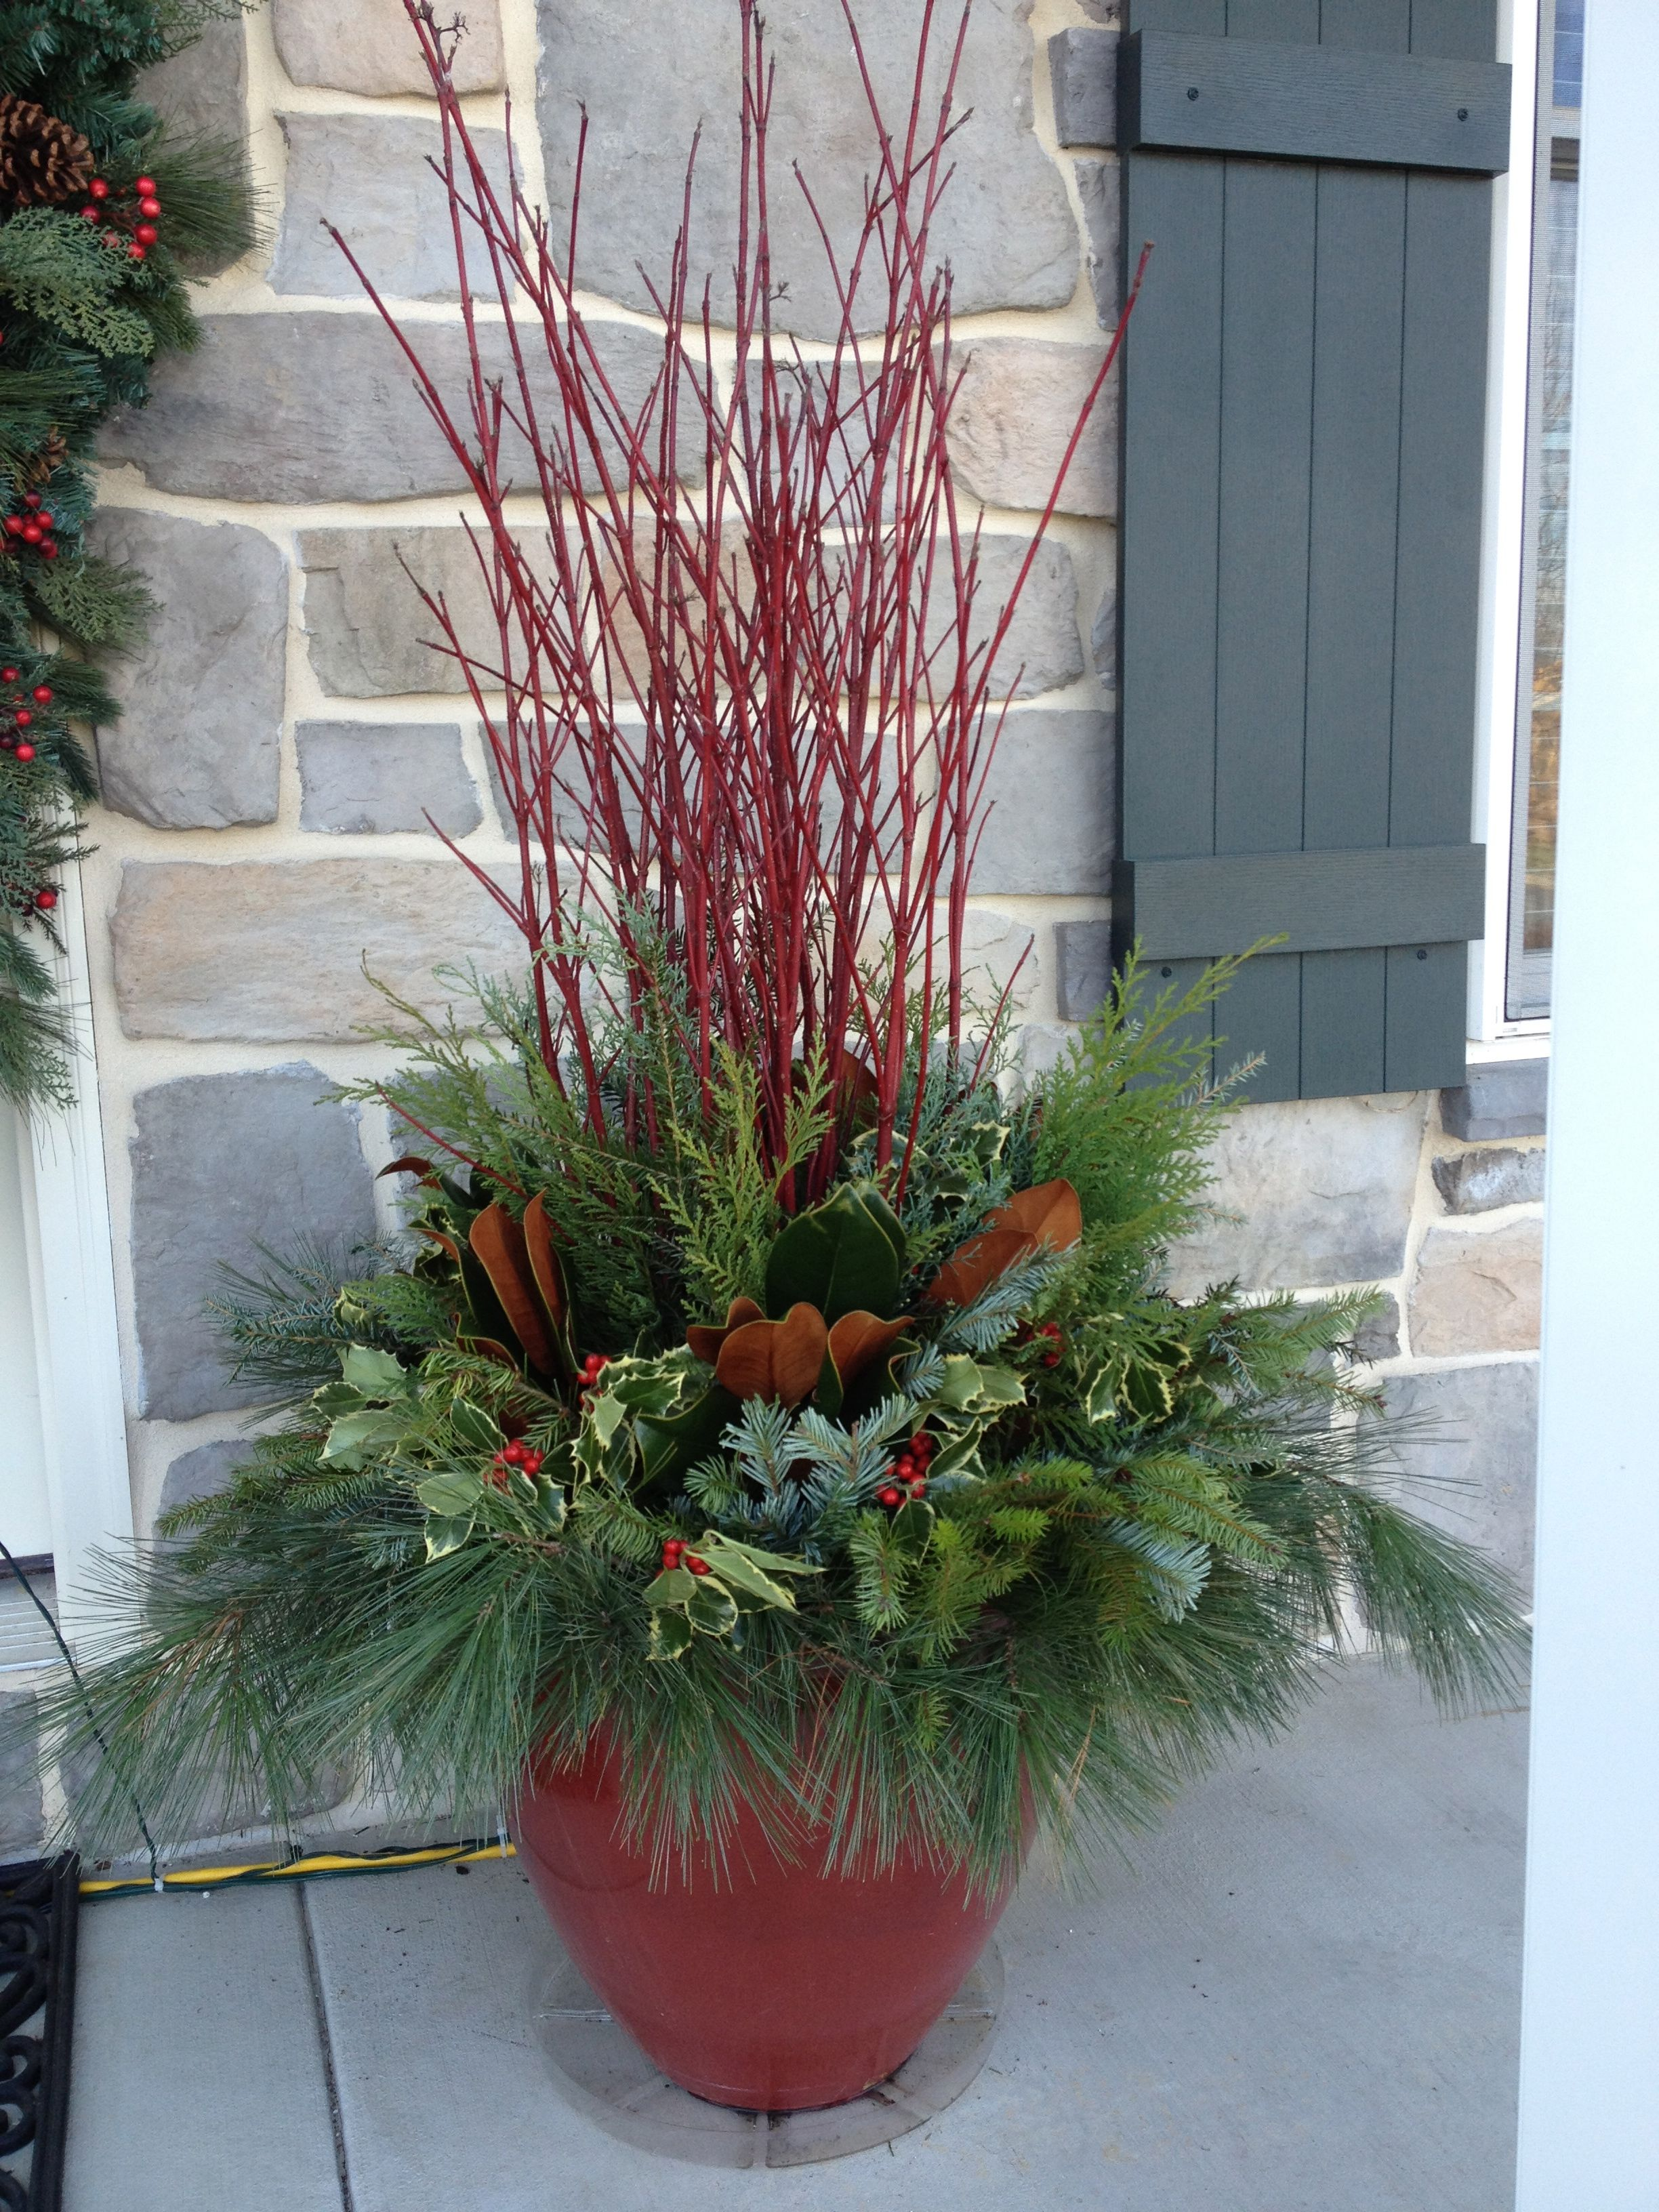 Winter Christmas Container Garden Red Pot Red Twig Dogwood